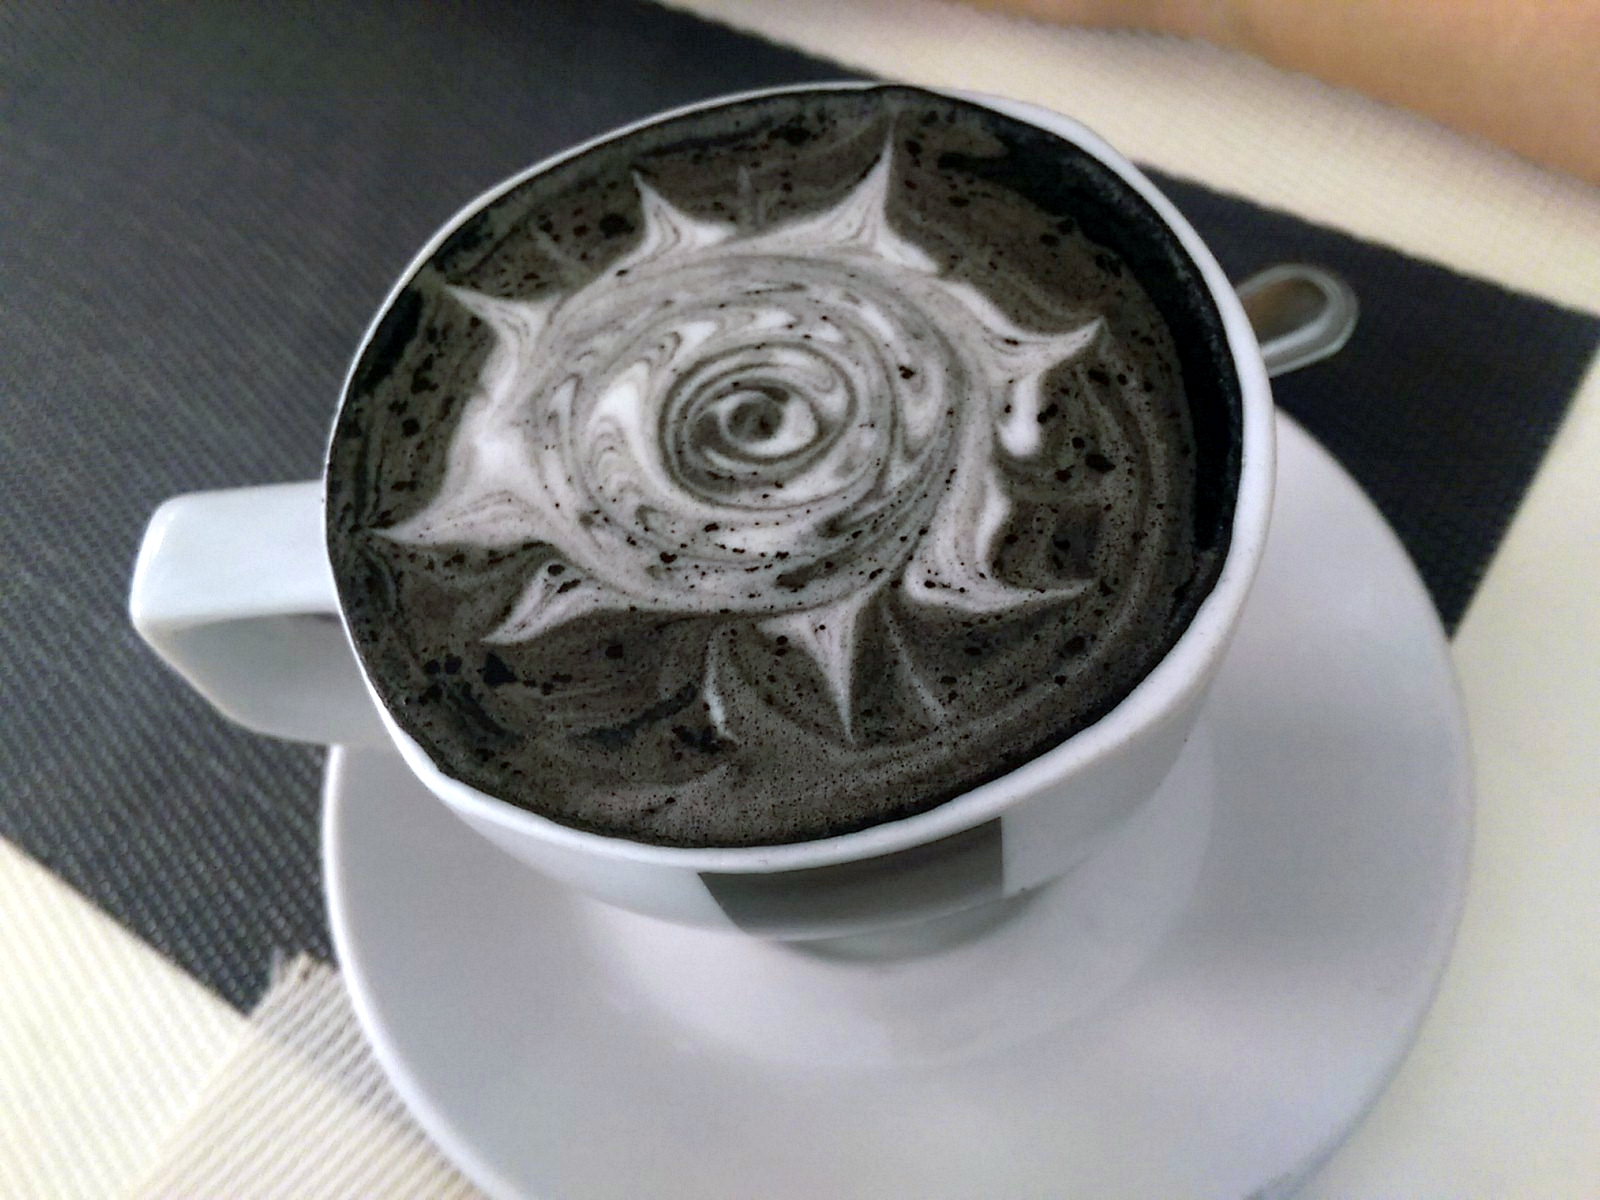 A white cup with a black beverage and latte art